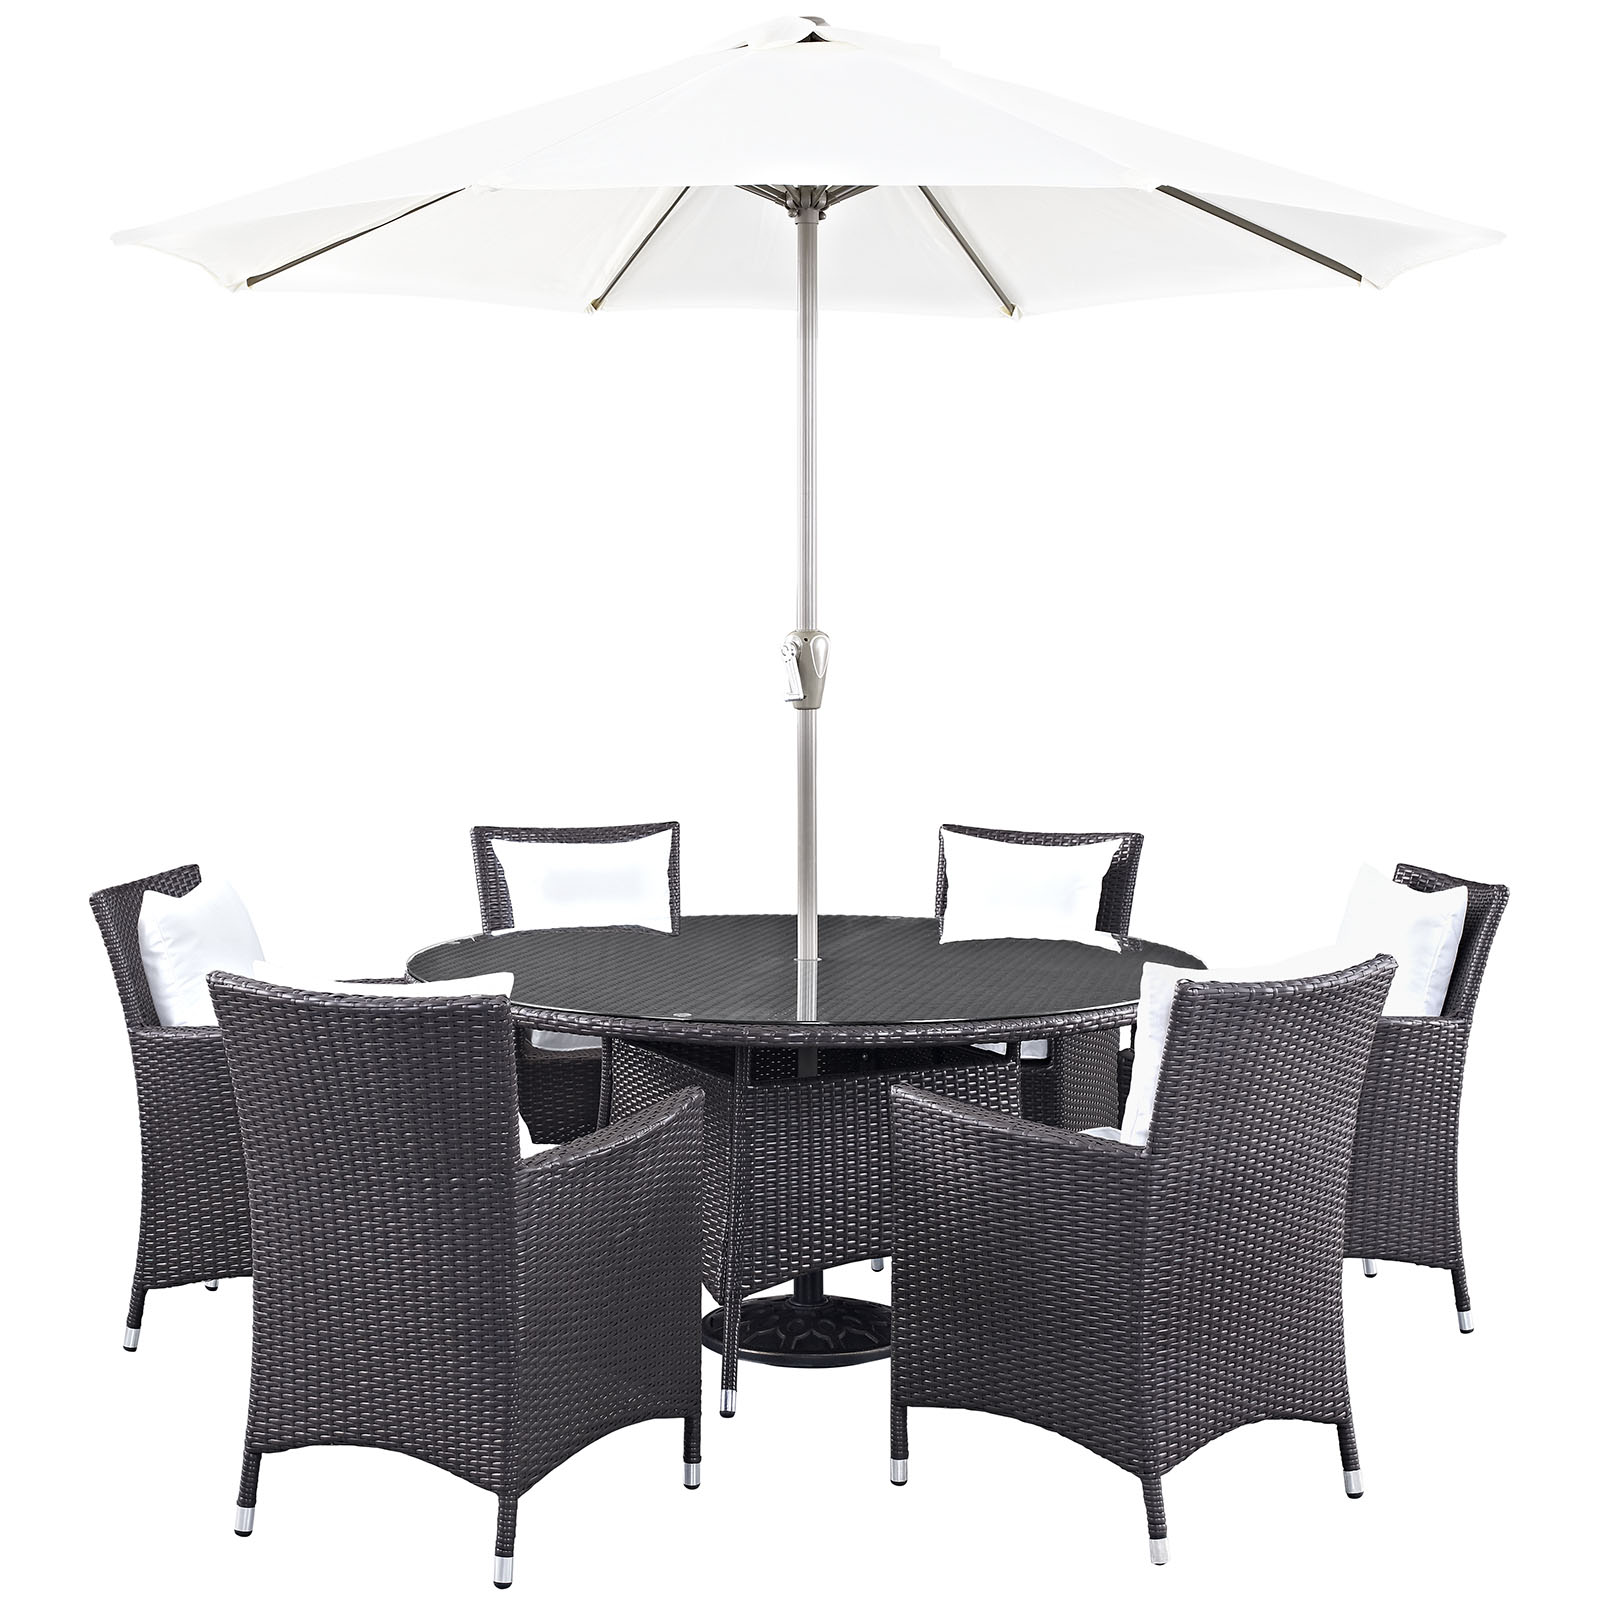 Modern Contemporary Urban Design Outdoor Patio Balcony Eight PCS Dining Chairs and Table Set, White, Rattan